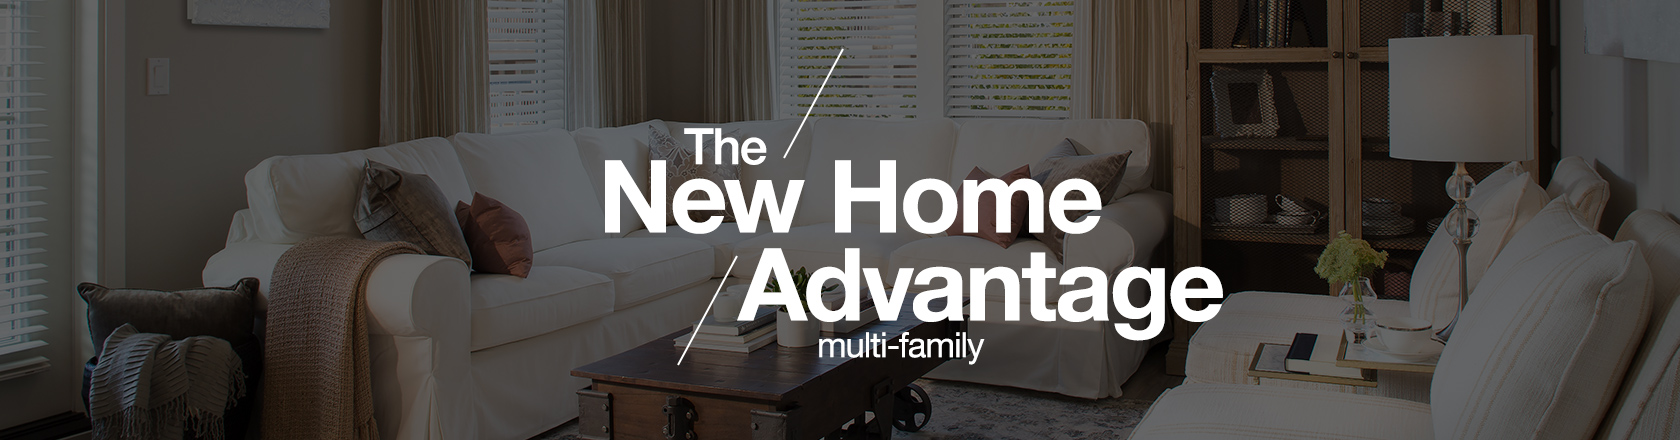 Single-Family New Home Advantage banner